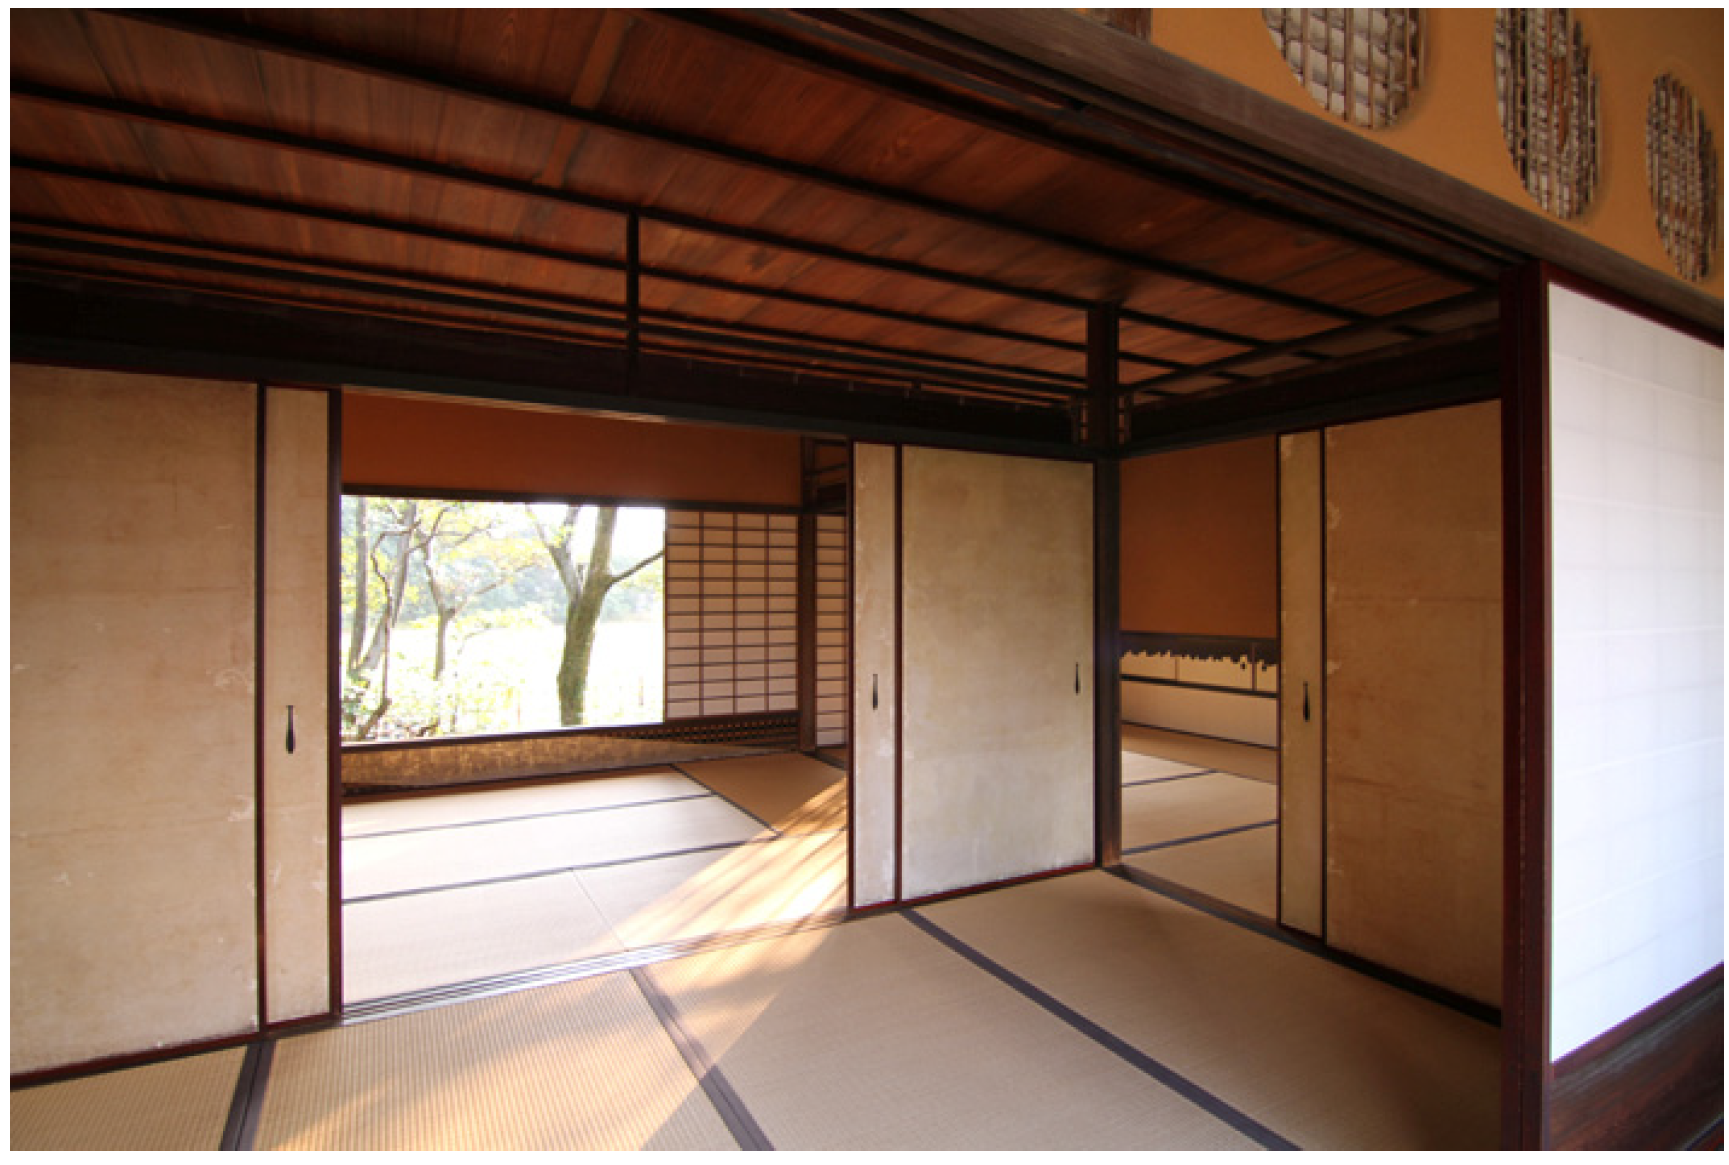 Buildings | Free Full Text | Fudo: An East Asian Notion Of ...